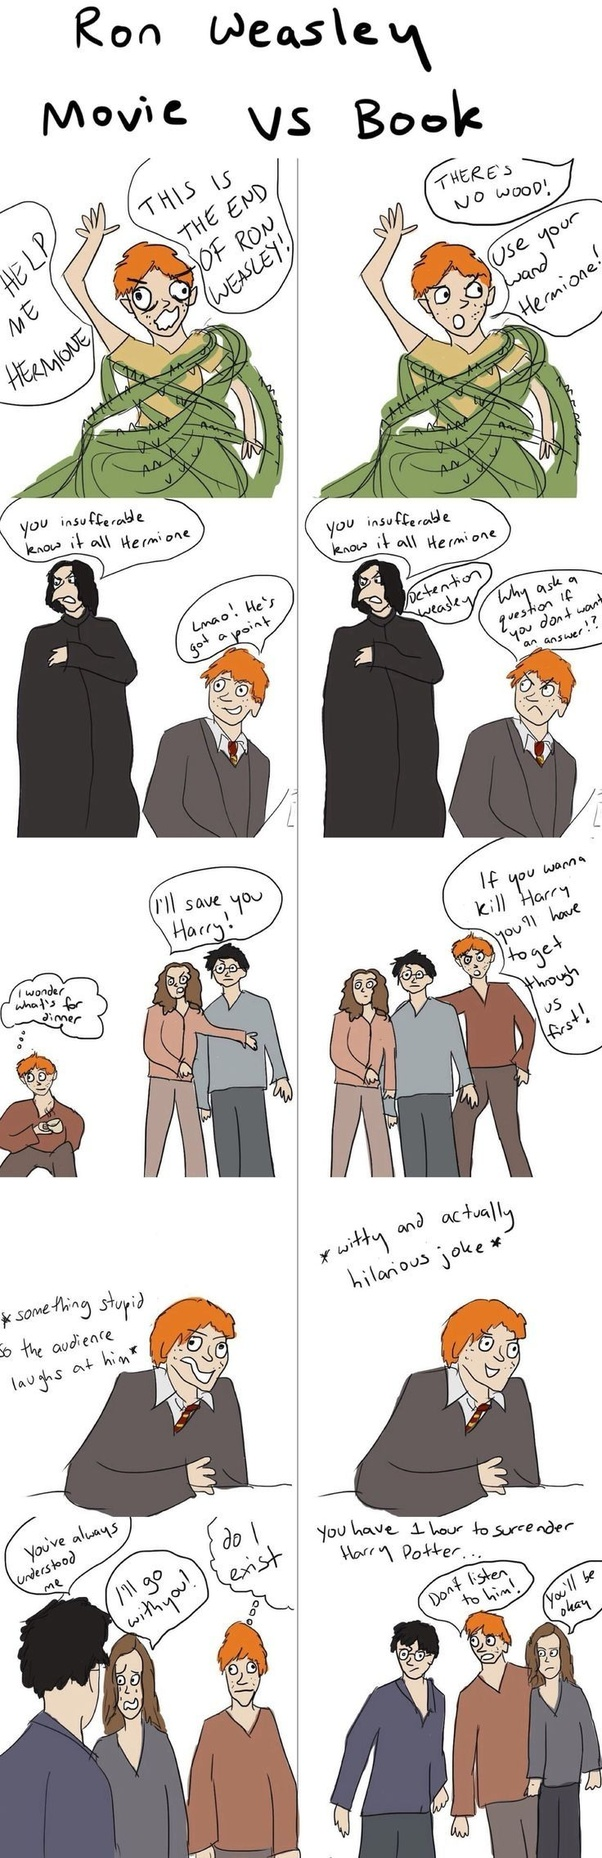 Why do fans bash the Weasleys but not Hermione? - Quora